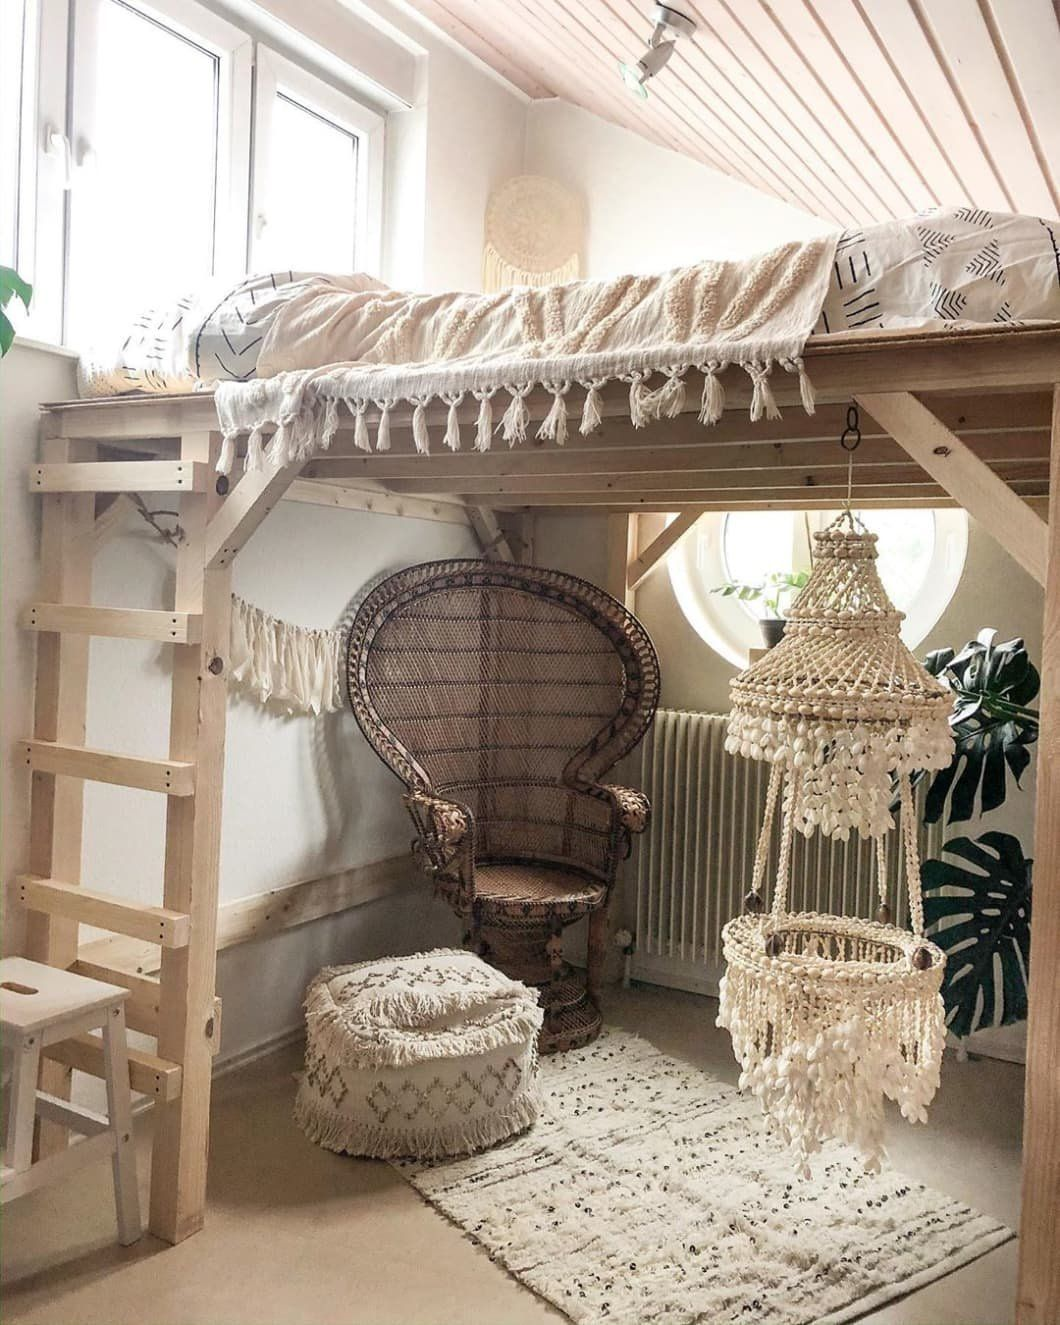 15 Stylish Diy Loft Bed Ideas Of All Sizes To Help You Max Out Your Small Space In 2020 Loft Bed Plans Diy Loft Bed Girls Loft Bed